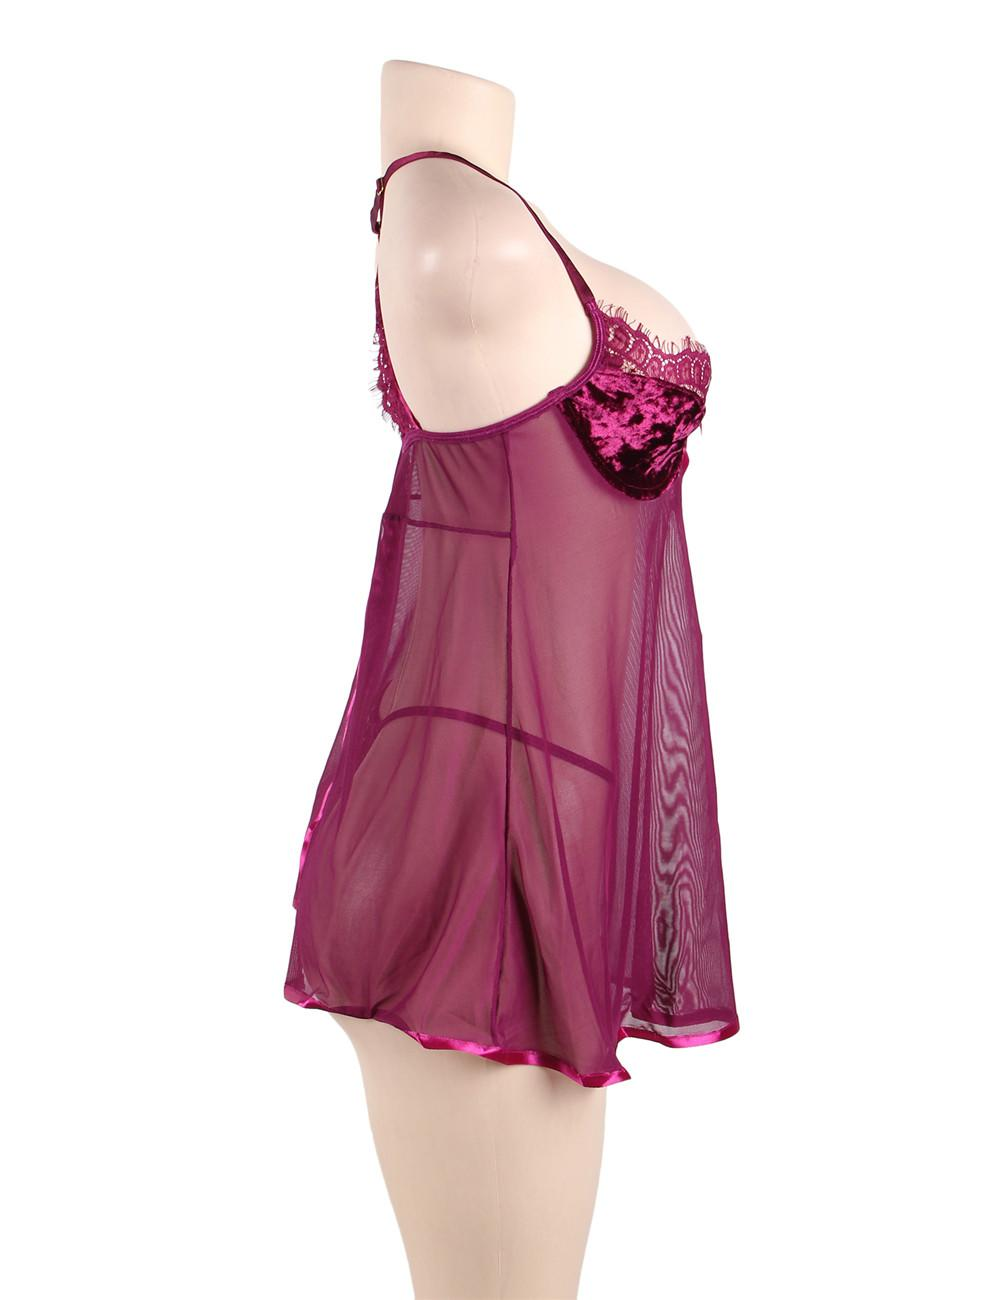 Velvet Underground Babydoll Set side view